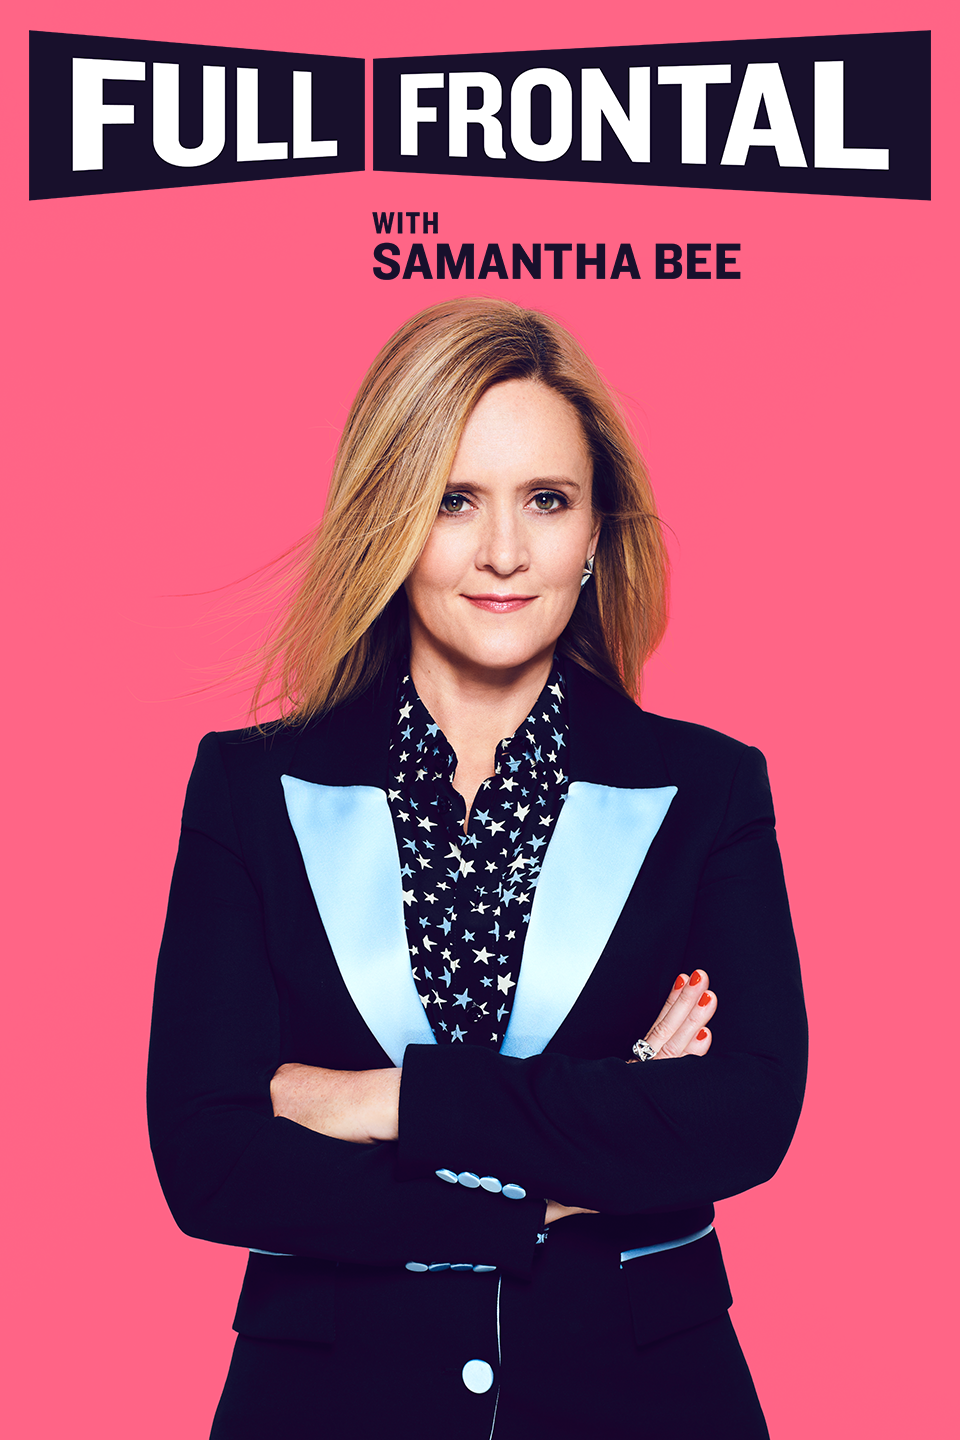 Promotional poster for FULL FRONTAL WITH SAMANTHA BEE.